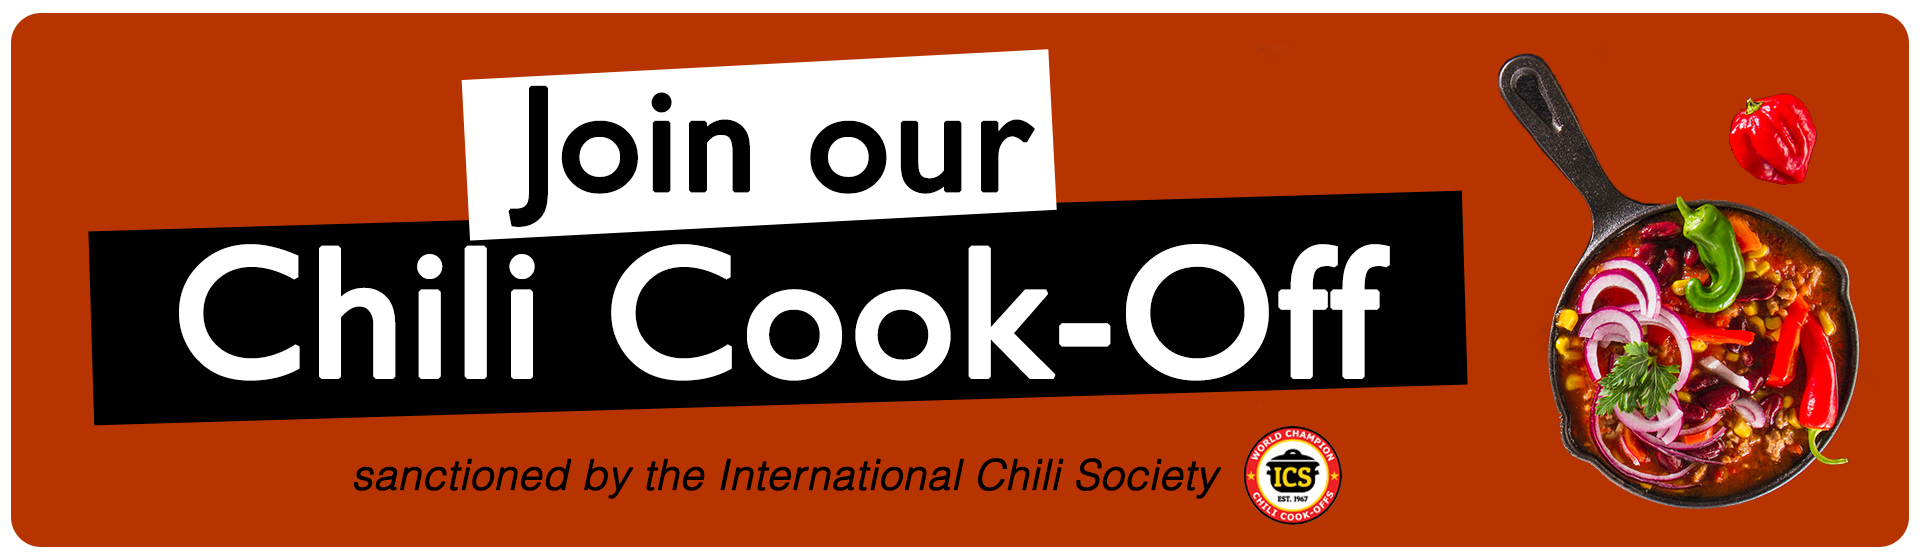 Chili-Cook-off-button-page.jpg